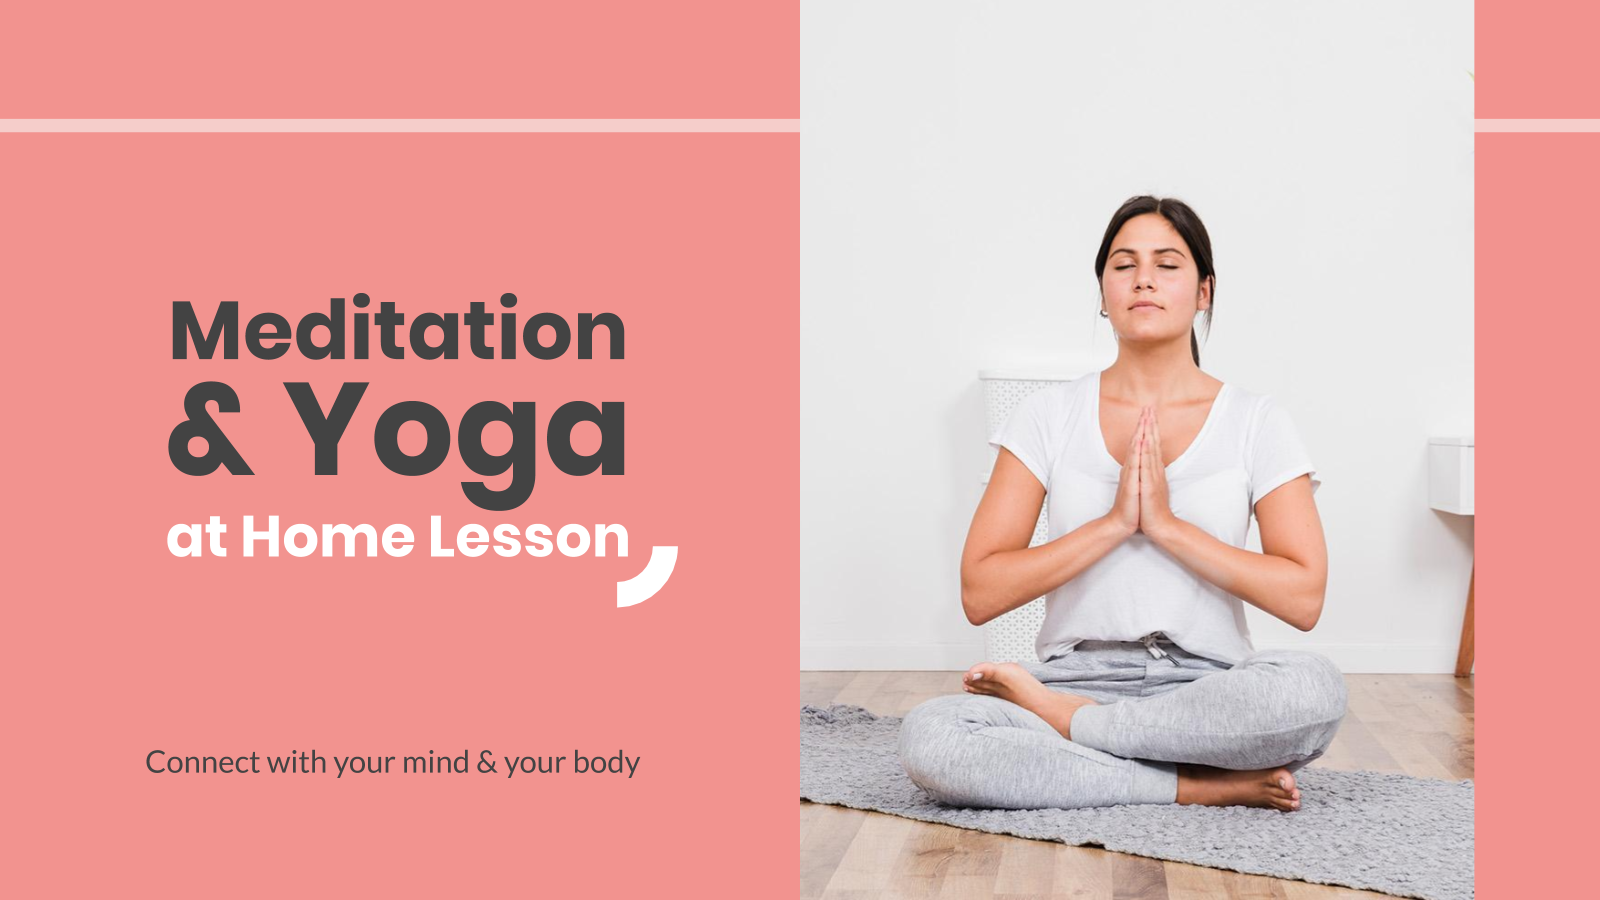 Meditation & Yoga at Home Lesson presentation template